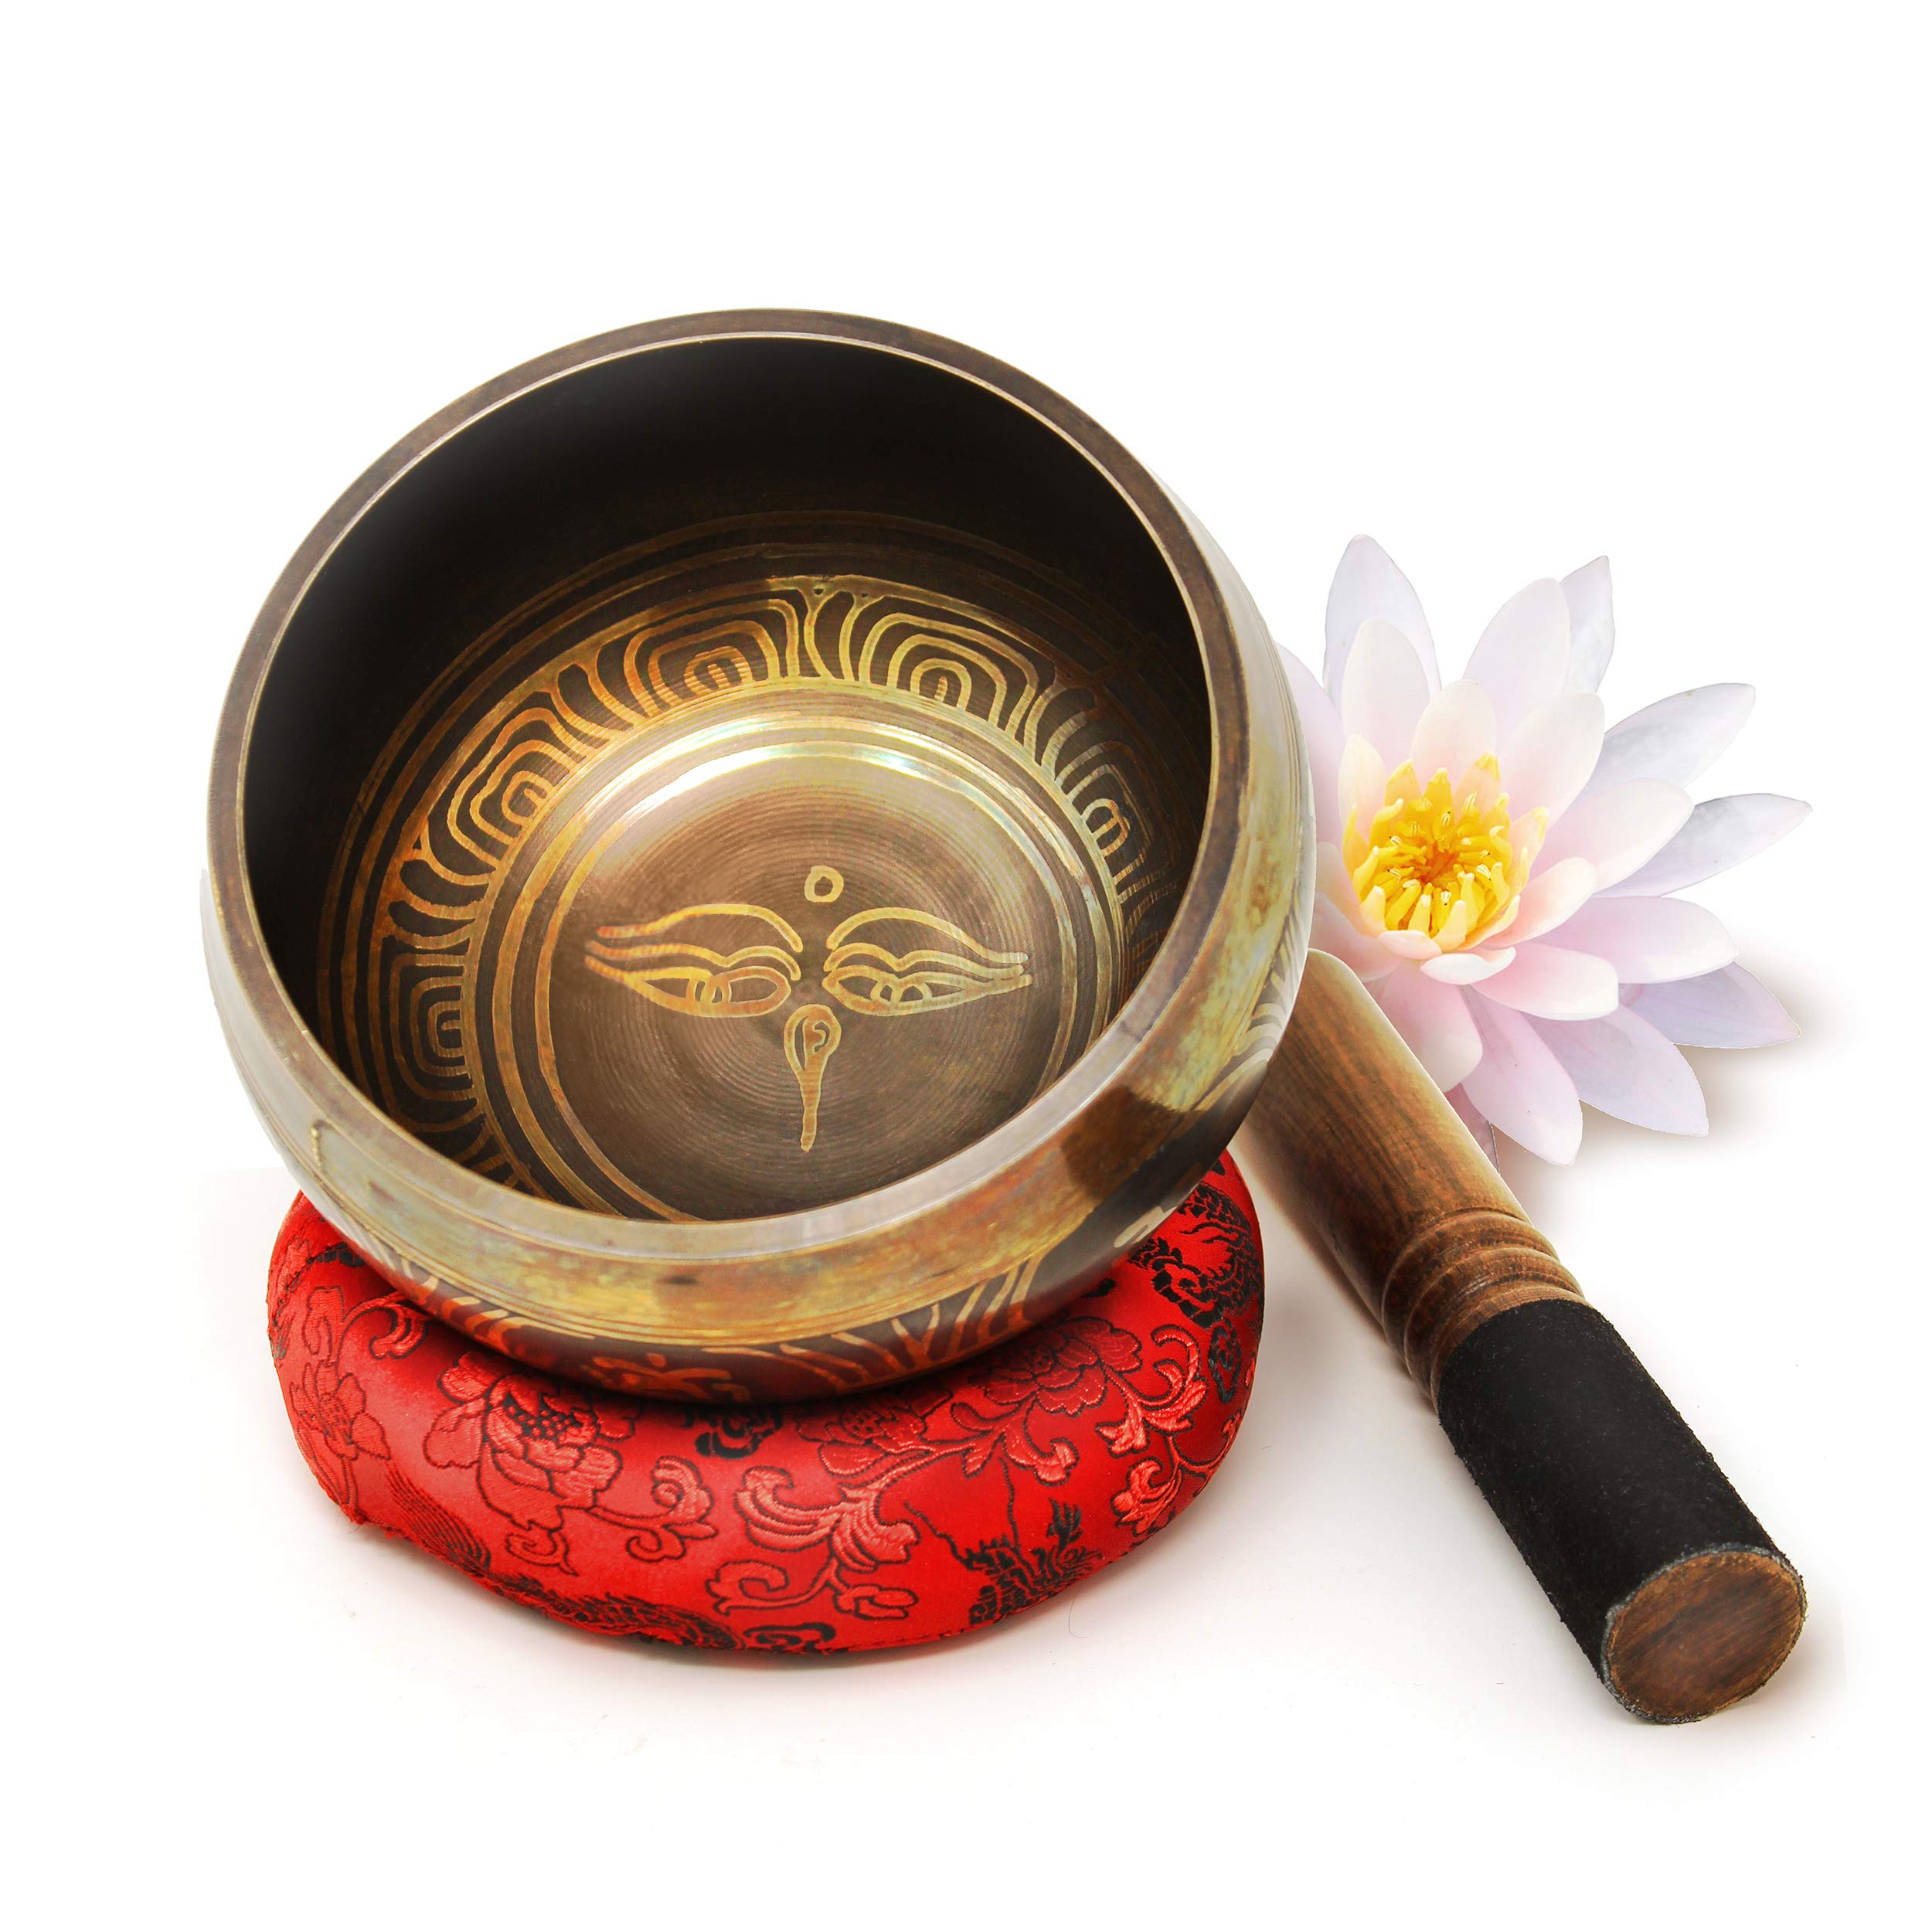 Large 5 inches Tibetan Singing Bowl Set with Deep Resonating and Relaxing Sound ~Great For Mindfulness Meditation, Relaxation, Stress & Anxiety Relief, Chakra, Yoga and Zen~ With Gift Box (Black) by Juccini